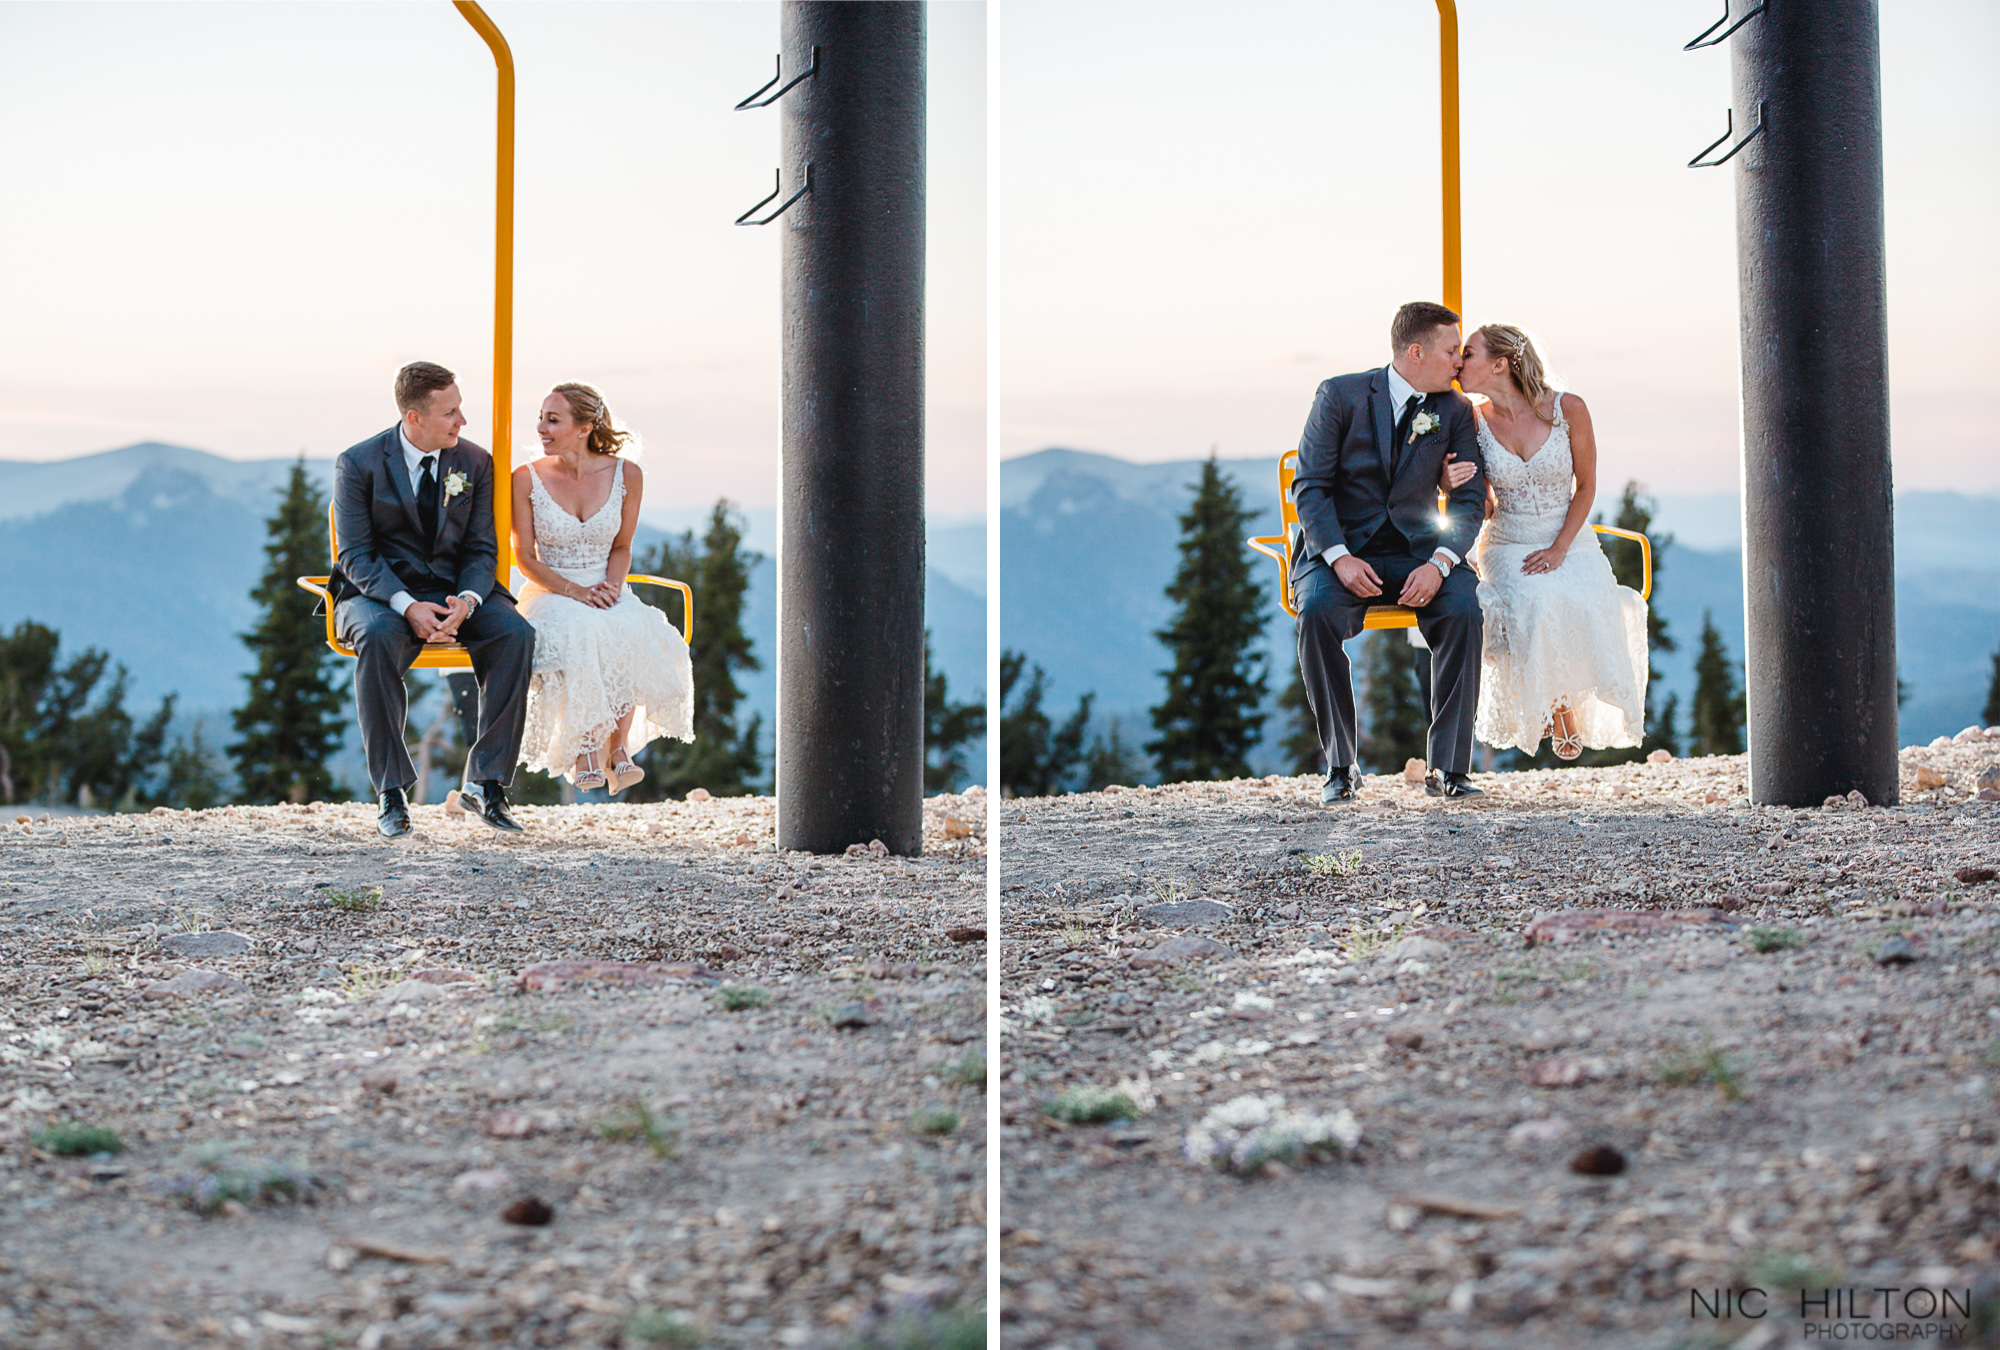 Mammoth-bride-and-groom-chairlift.jpg